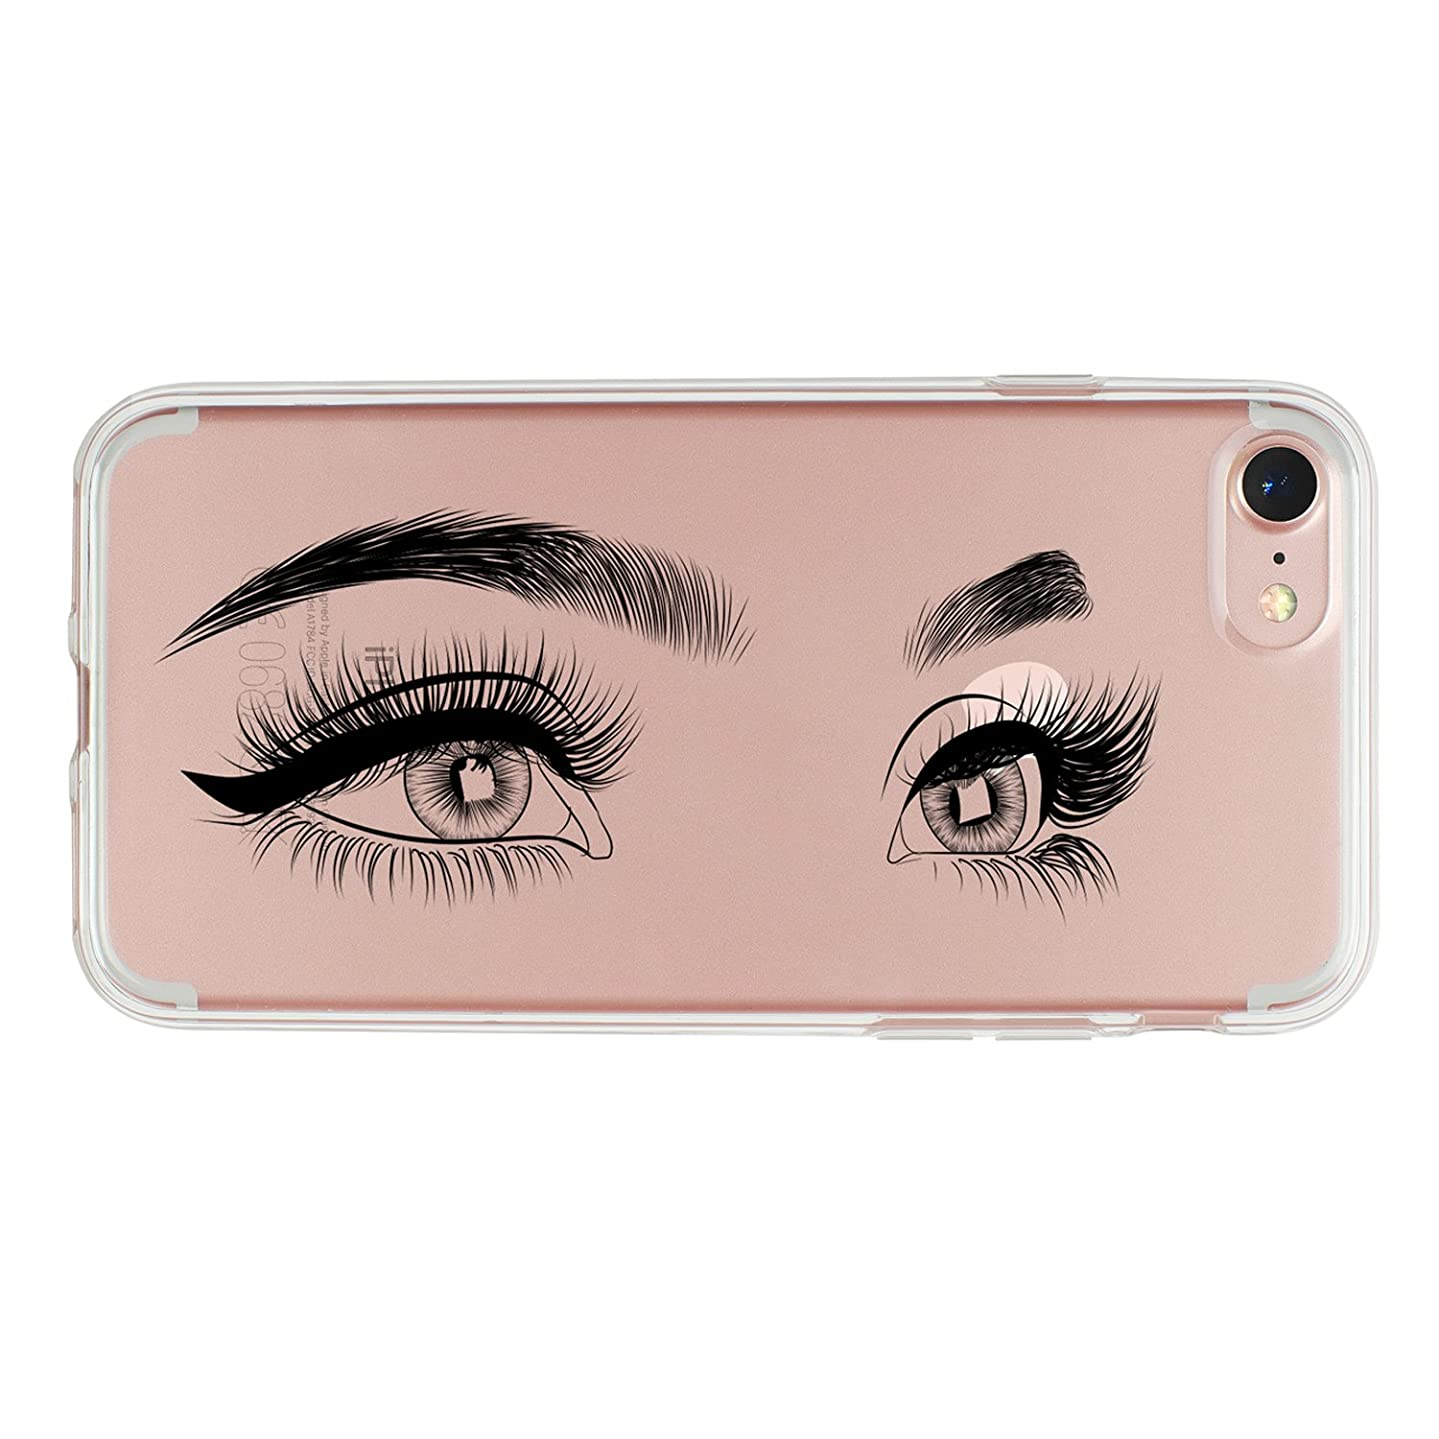 iPhone 7 Case,iPhone 8 Case,TRFAEE Charming Eyes Eyelashes Clear Shock-Absorption Bumper Anti-Scratch TPU Soft Rubber Protective Cover Case Apple iPhone 7/8